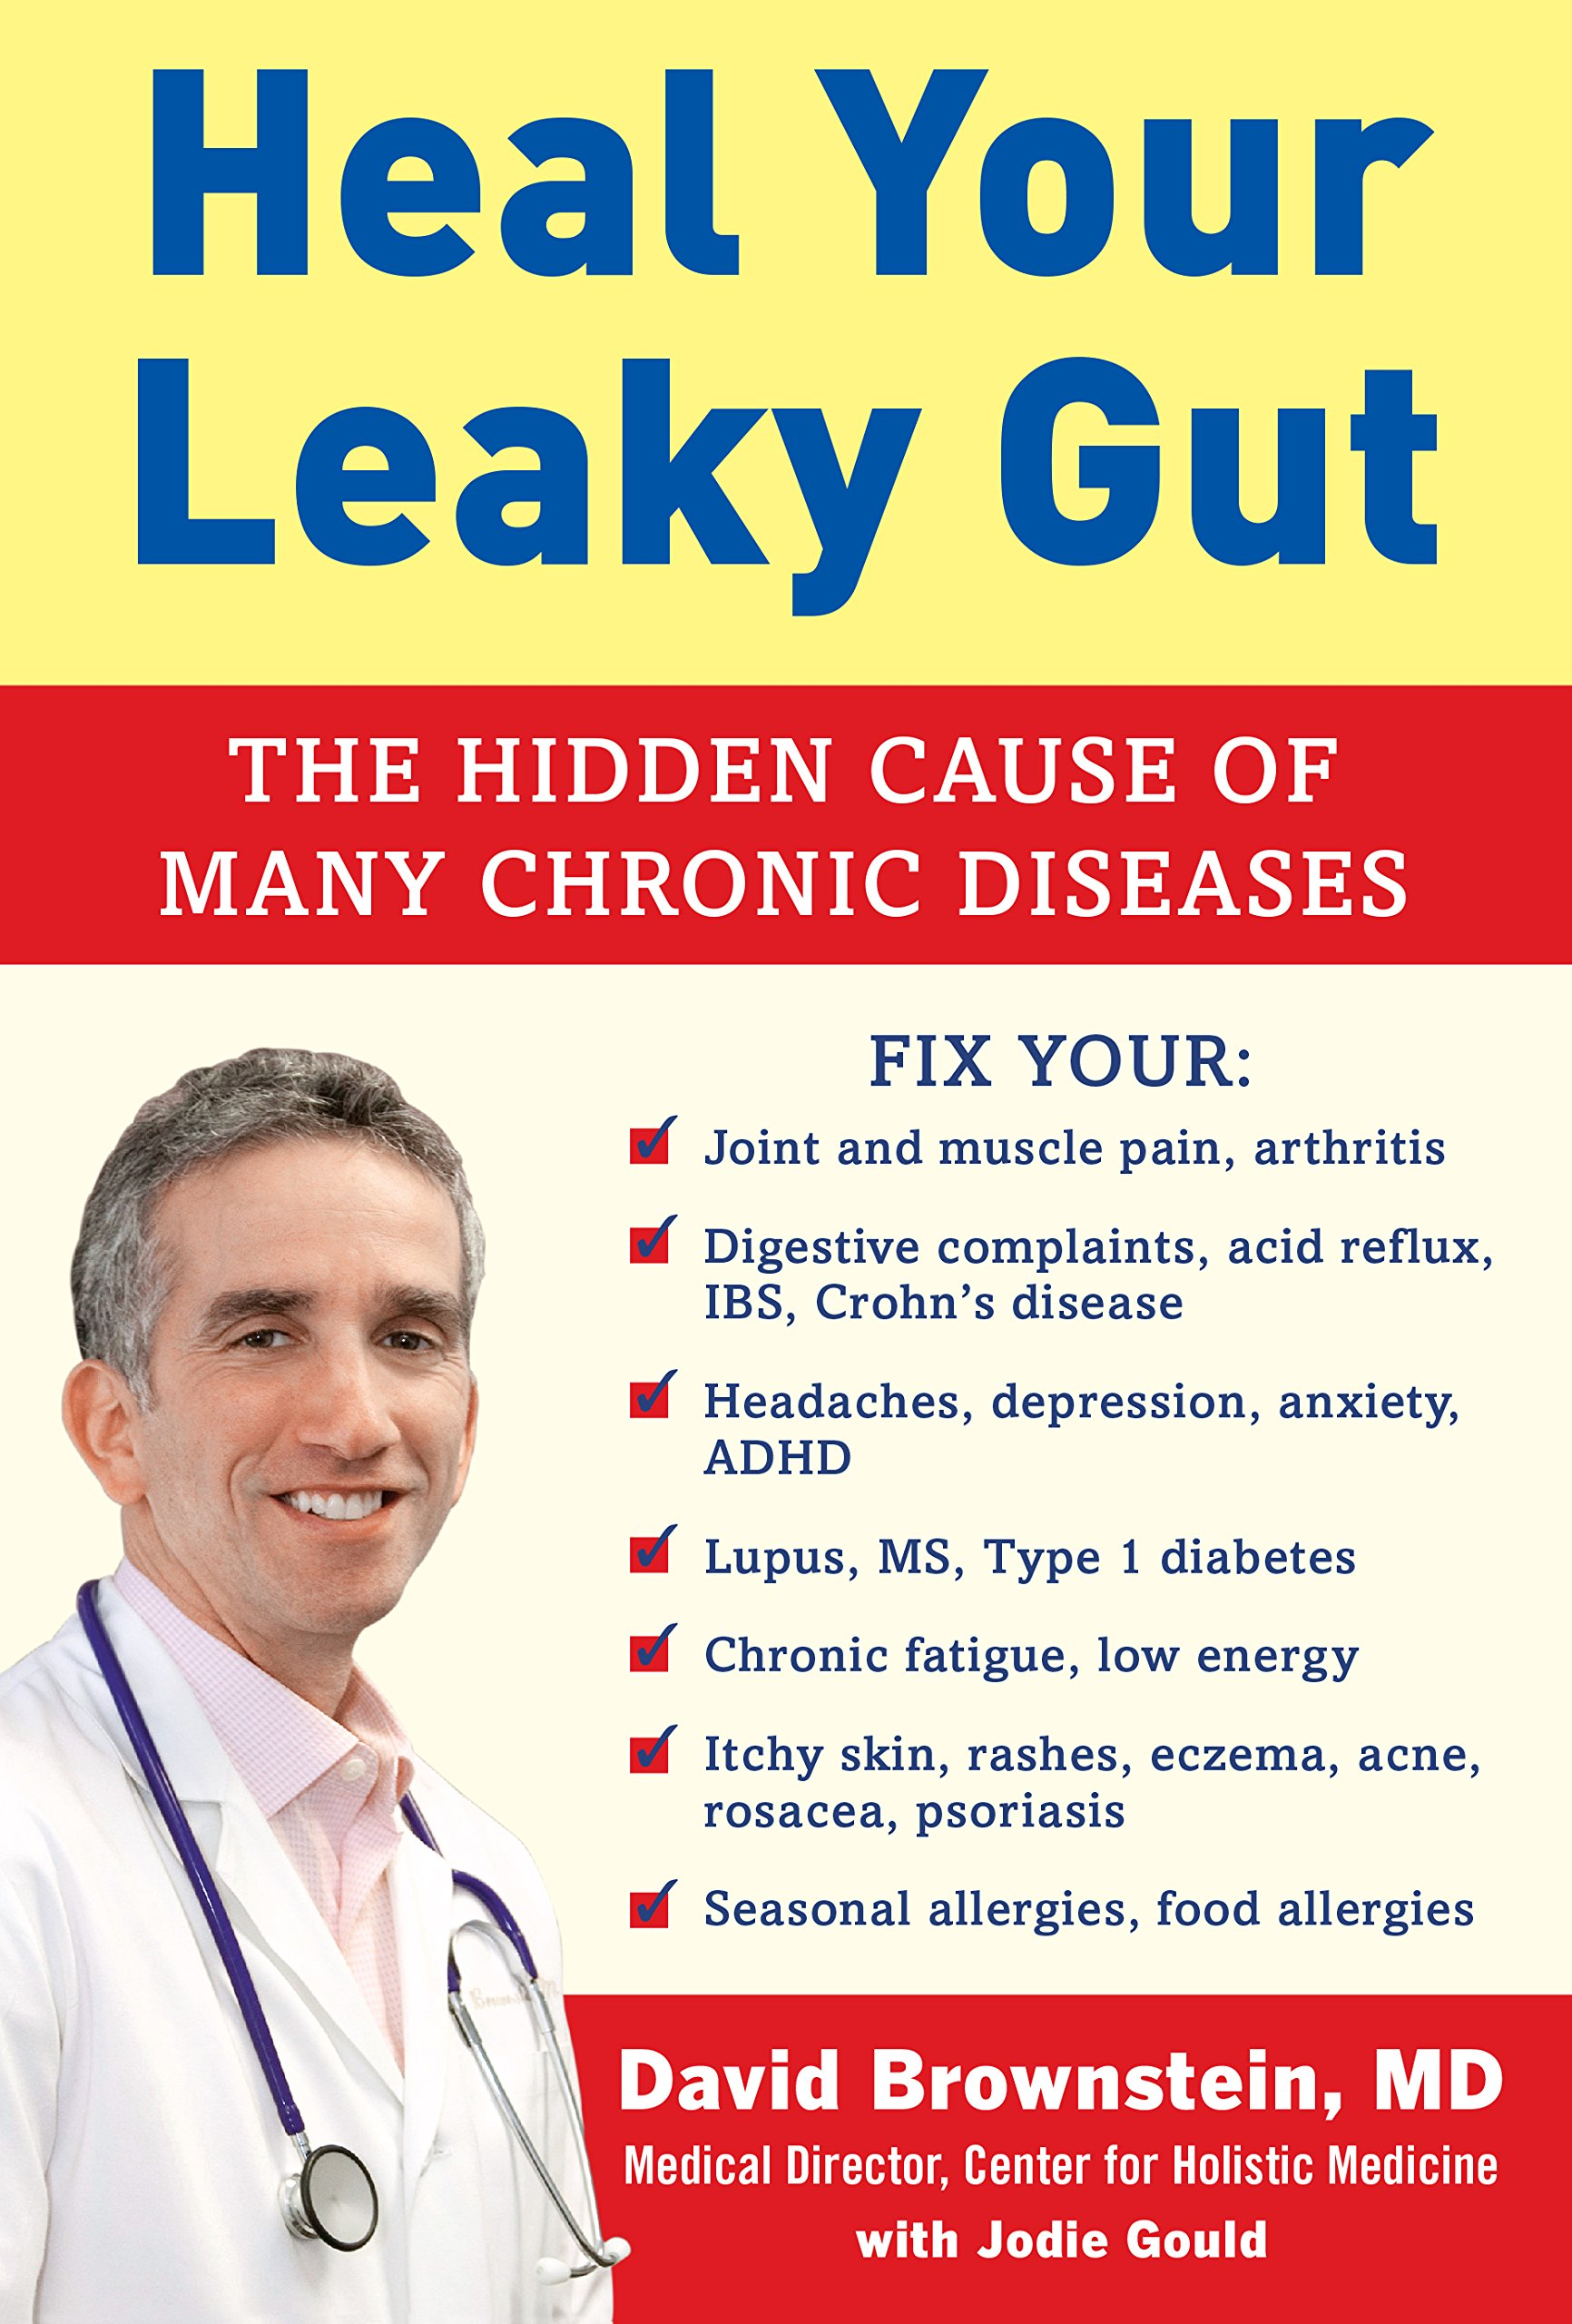 Heal Your Leaky Gut: The Hidden Cause of Many Chronic Diseases - By Dr. David Brownstein, MDMost illnesses start in the gut, including many you would not even think of!And if your gut isn?t functioning right, it sets the stage for illness and disease. The gut - the gastrointestinal system - is designed to absorb nutrients that support our bodies and help us make energy, and get rid of things that we don't need or are toxic. But what happens when the system breaks down? Leaky gut syndrome (LGS) occurs when the lining of the small intestine is damaged, allowing foreign compounds to escape into your bloodstream, which weakens your immune system and triggers autoimmune reactions.Traditional physicians don't understand what LGS is - much less how to diagnose and treat it. In fact, it is estimated that more than 80 percent of people with chronic illnesses have leaky gut, an overgrowth of bad bacteria, or not enough good bacteria.Here are some symptoms that may be caused by LGS:+ Digestive complaints, acid reflux, IBS, Crohn?s disease+ Joint and muscle pain, arthritis+ Obesity and food allergies+ Headaches, depression, anxiety, ADHD+ Itchy skin, rashes, eczema, acne, rosacea, psoriasisIn Heal Your Leaky Gut, Dr. David Brownstein will explain how the gut - like the brain, heart, and liver - needs to be properly nourished in order for it to function correctly. Simply stated, if your gut is not healthy, your immune system is going to suffer.Improving your gut health and taking fewer drugs will help you feel better and look younger, improve your brain function, and treat myriad medical conditions. This book will give you all the information you need to change what you are now doing so you can have optimal gut health and, as a result, overall health and well-being.